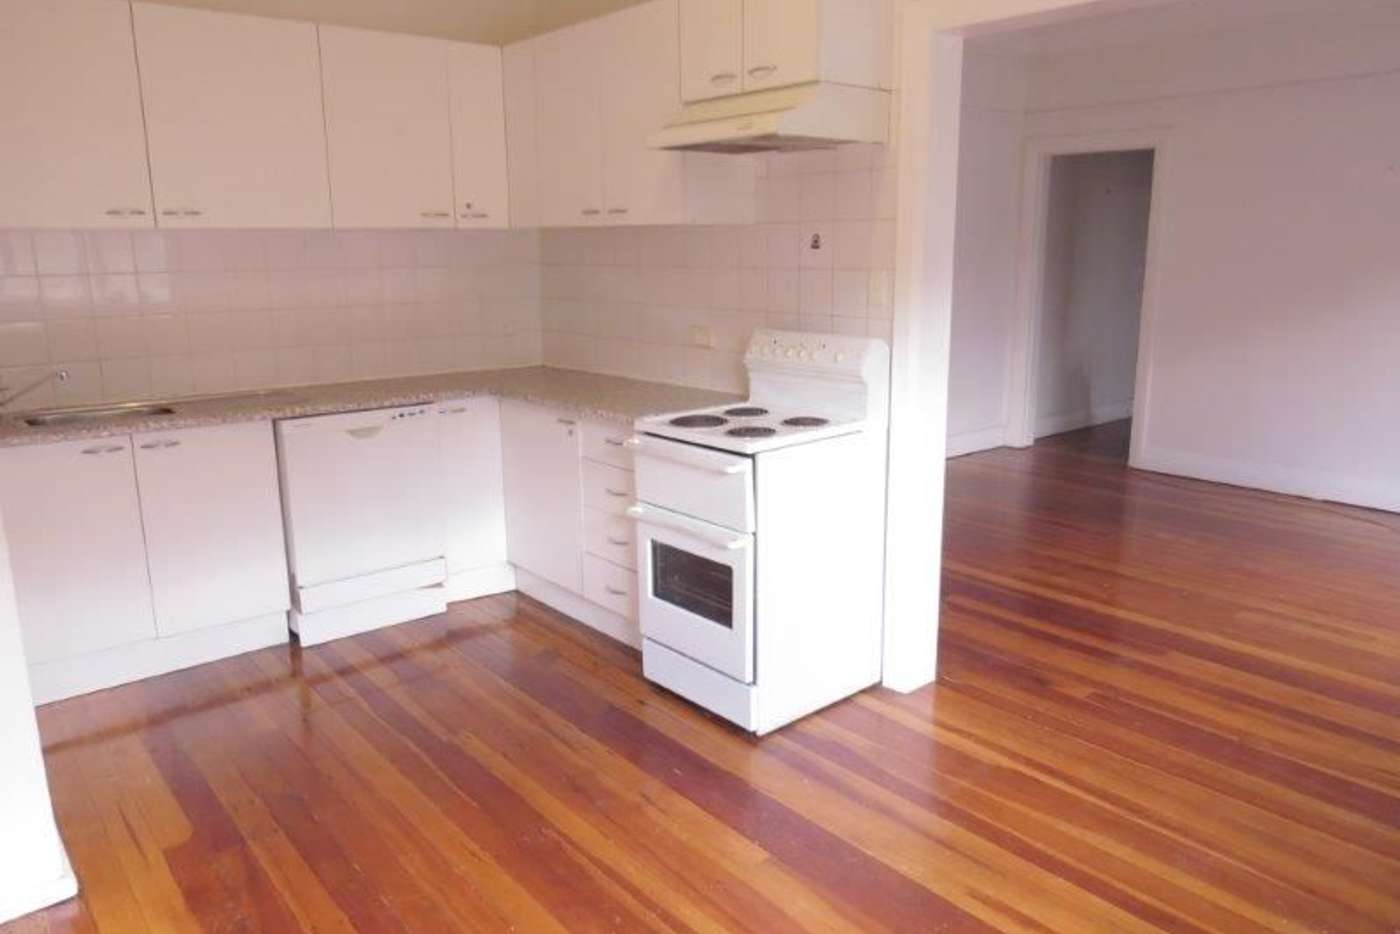 Main view of Homely apartment listing, 5/173 Walker Street, North Sydney NSW 2060